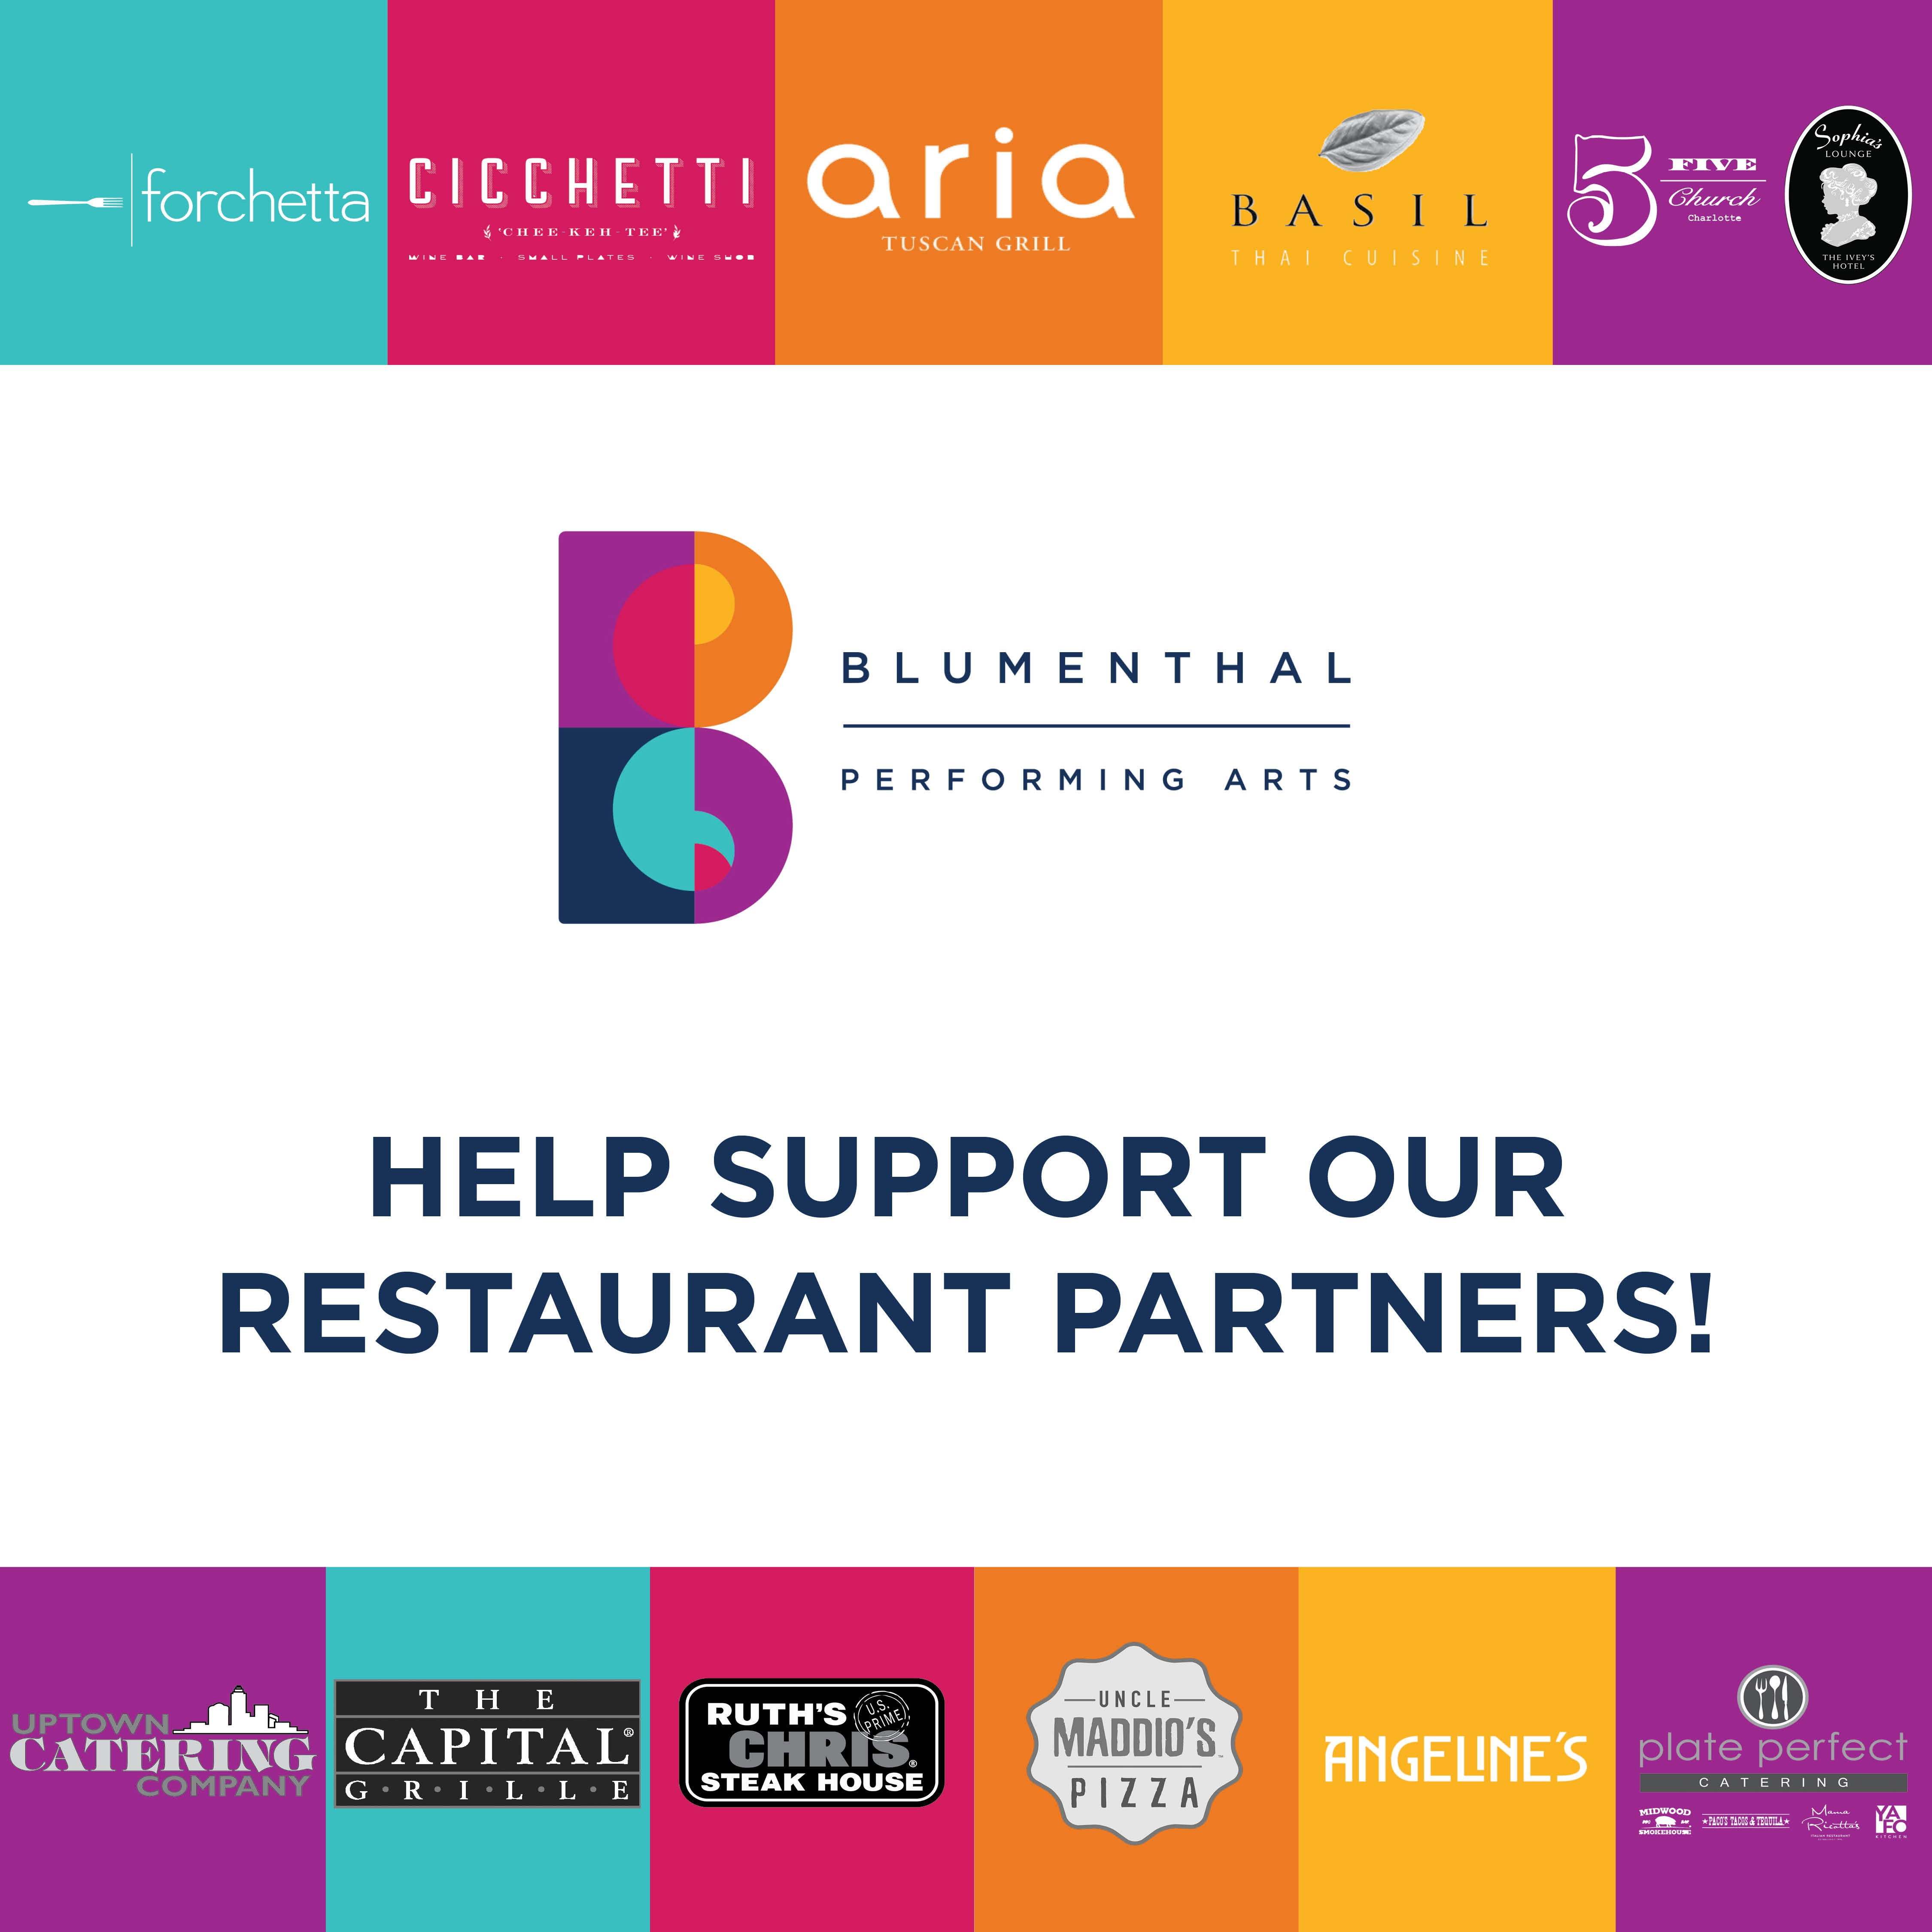 More Info for Want to Treat Mom to a Special Meal? Here's the Latest Info On Our Restaurant Partners!